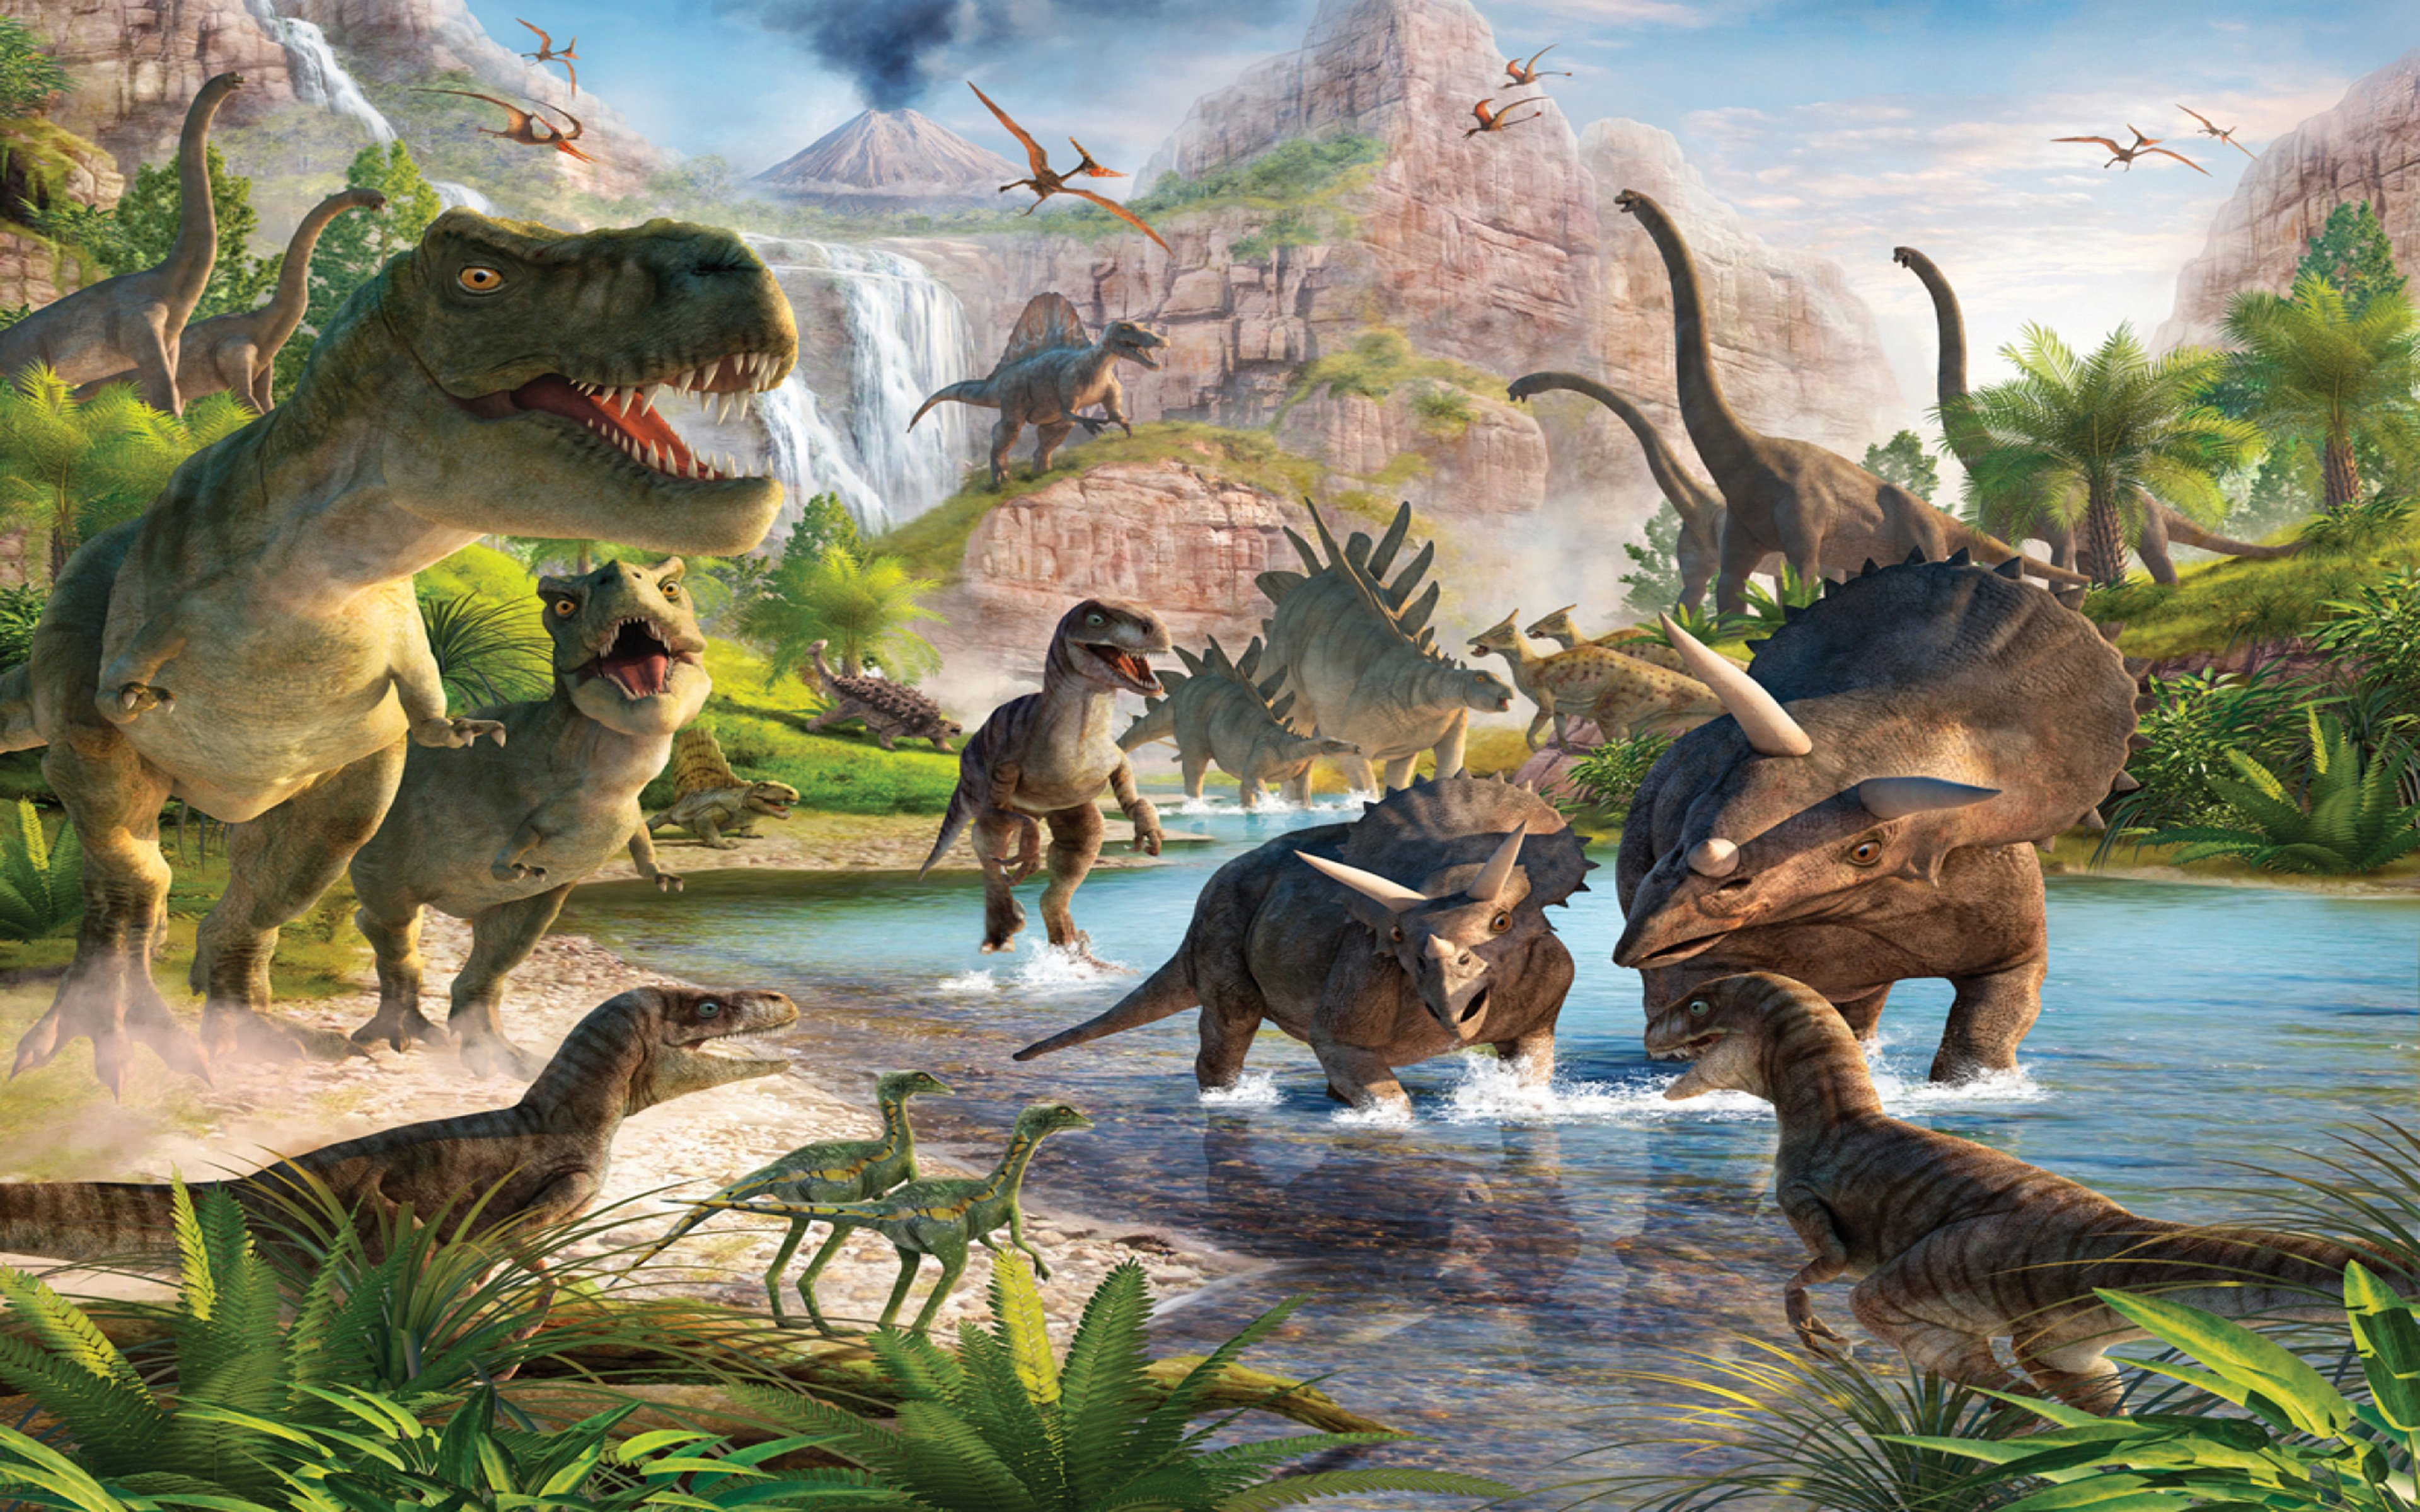 Dinosaurs Wallpapers For Desktop 11686 Full Hd Wallpaper 3840x2400